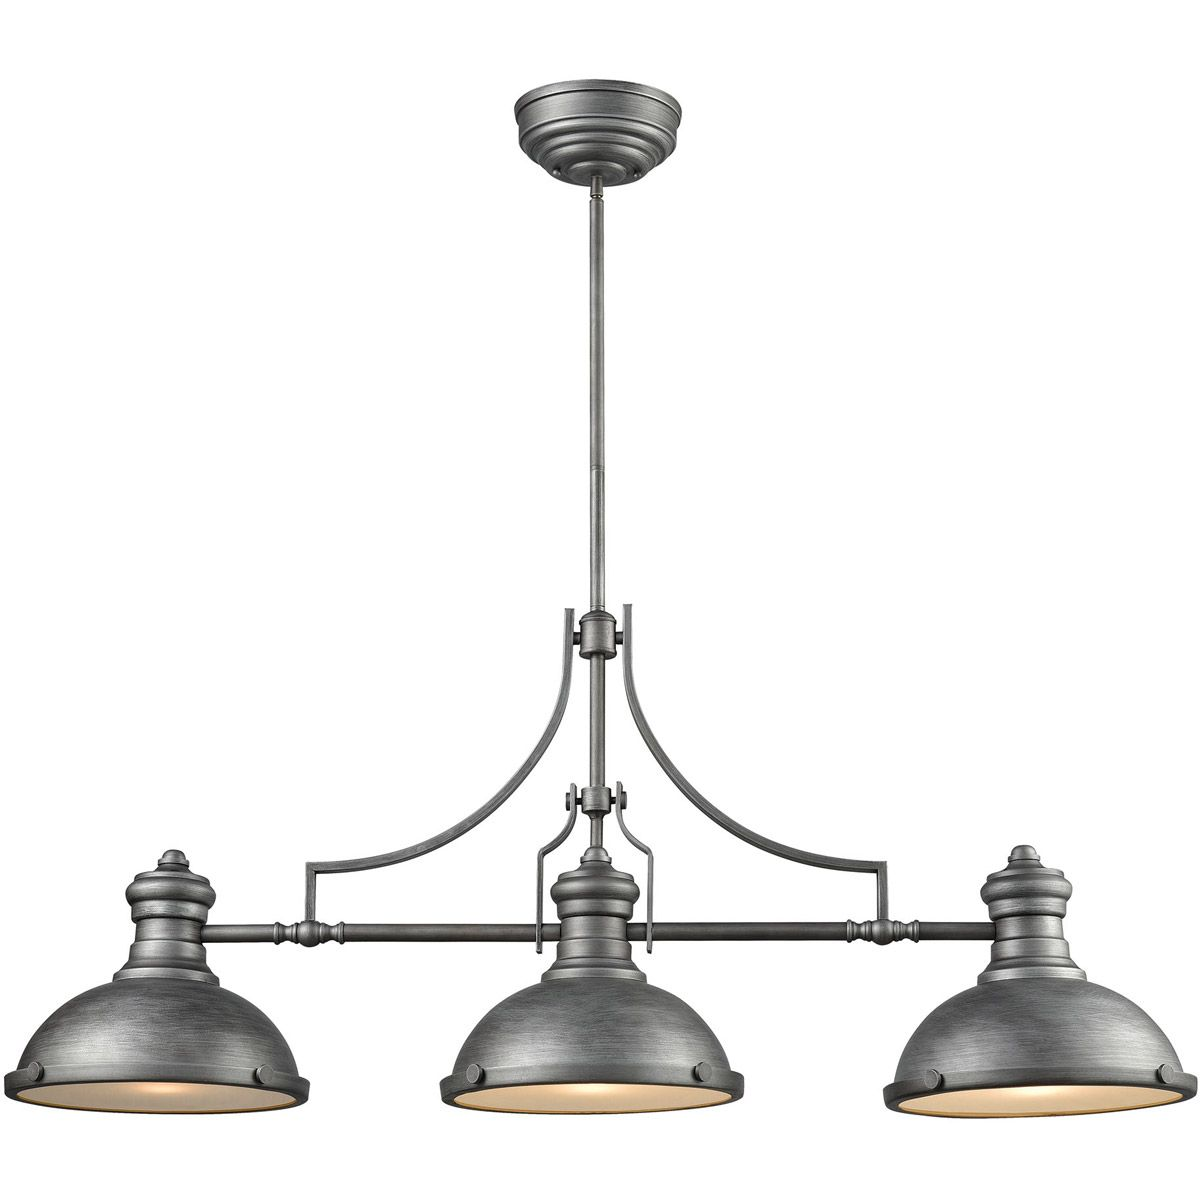 "Elk Lighting Chadwick Pendant: Elk Lighting Chadwick 47"" 3-Light Island Pendant In"